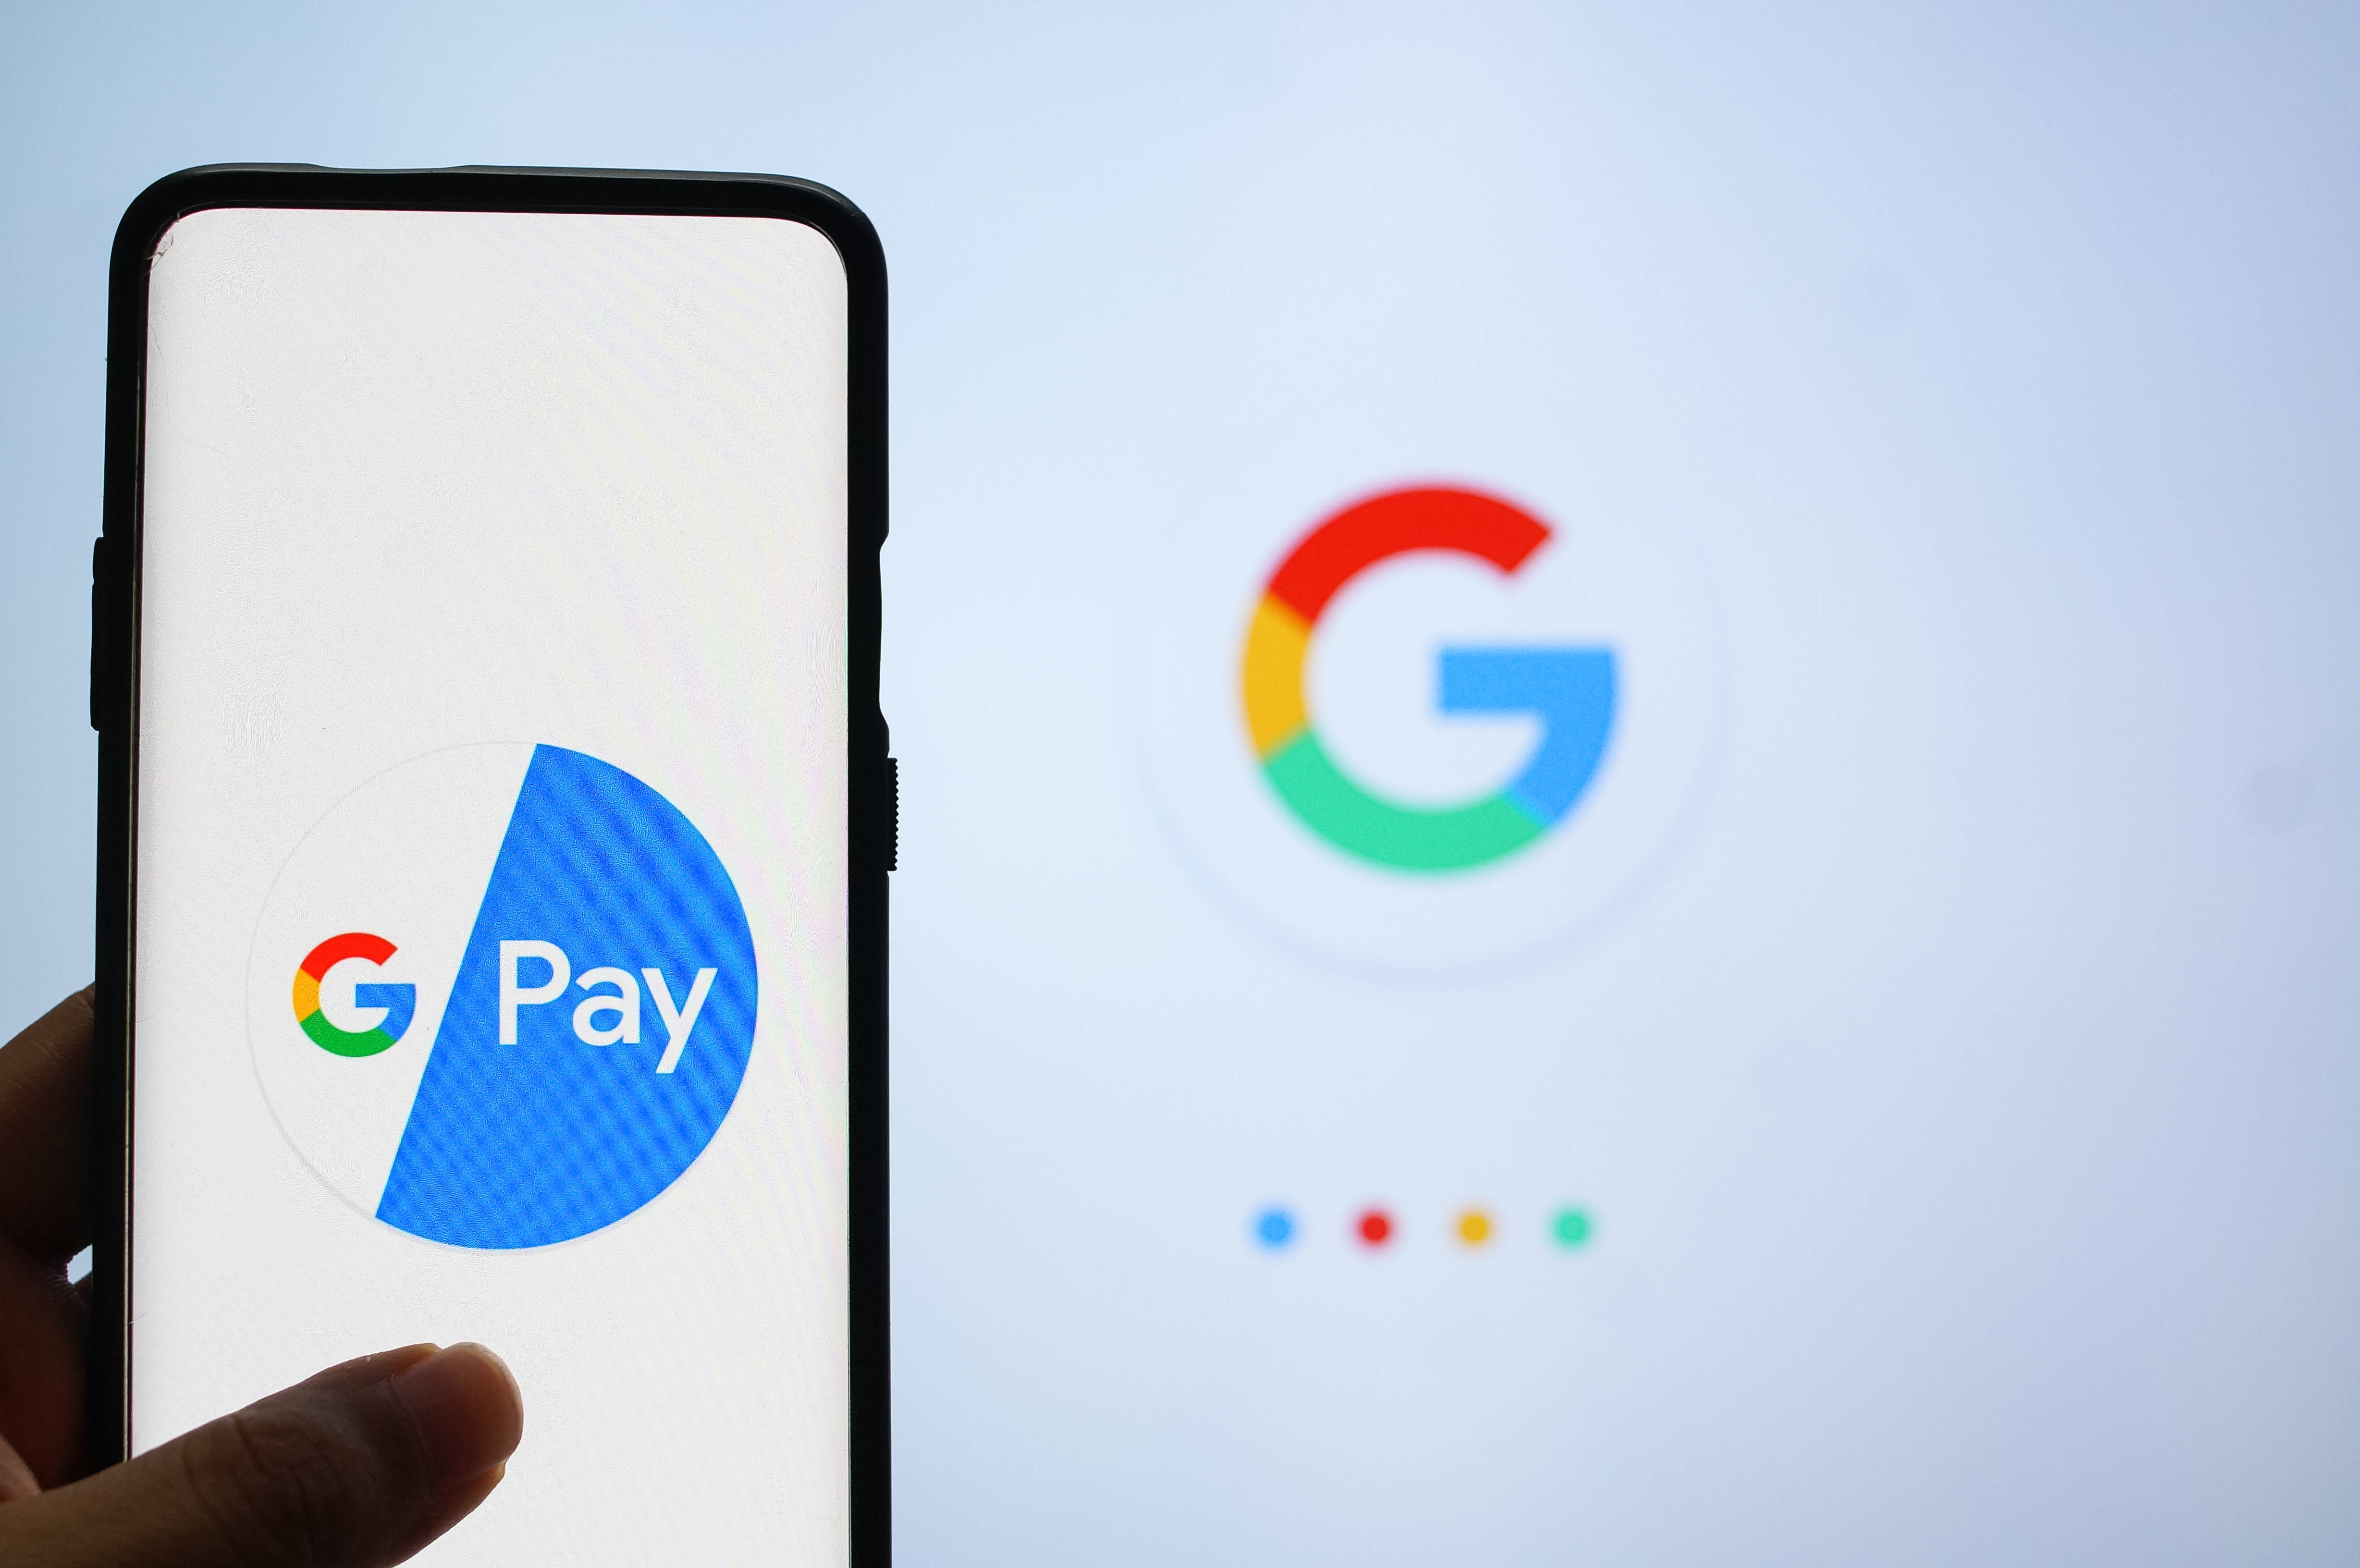 Guaranteed Safety for Google Pay Accounts with the Use of a Free VPN App